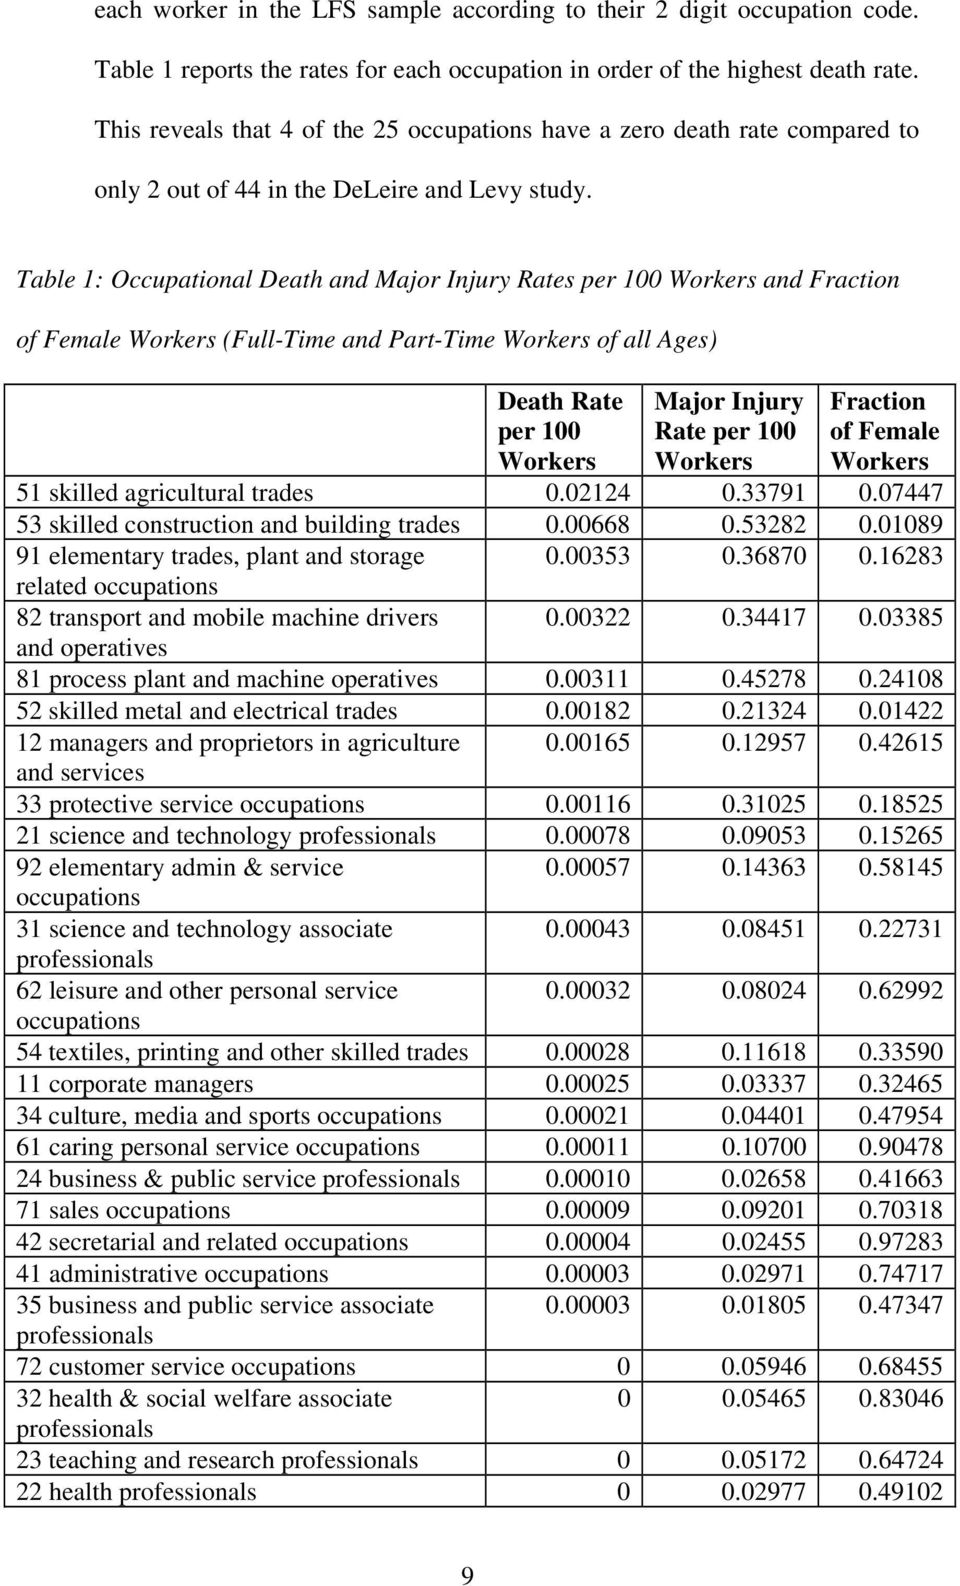 Table 1: Occupational Death and Major Injury Rates per 100 Workers and Fraction of Female Workers (Full-Time and Part-Time Workers of all Ages) Death Rate per 100 Workers Major Injury Rate per 100